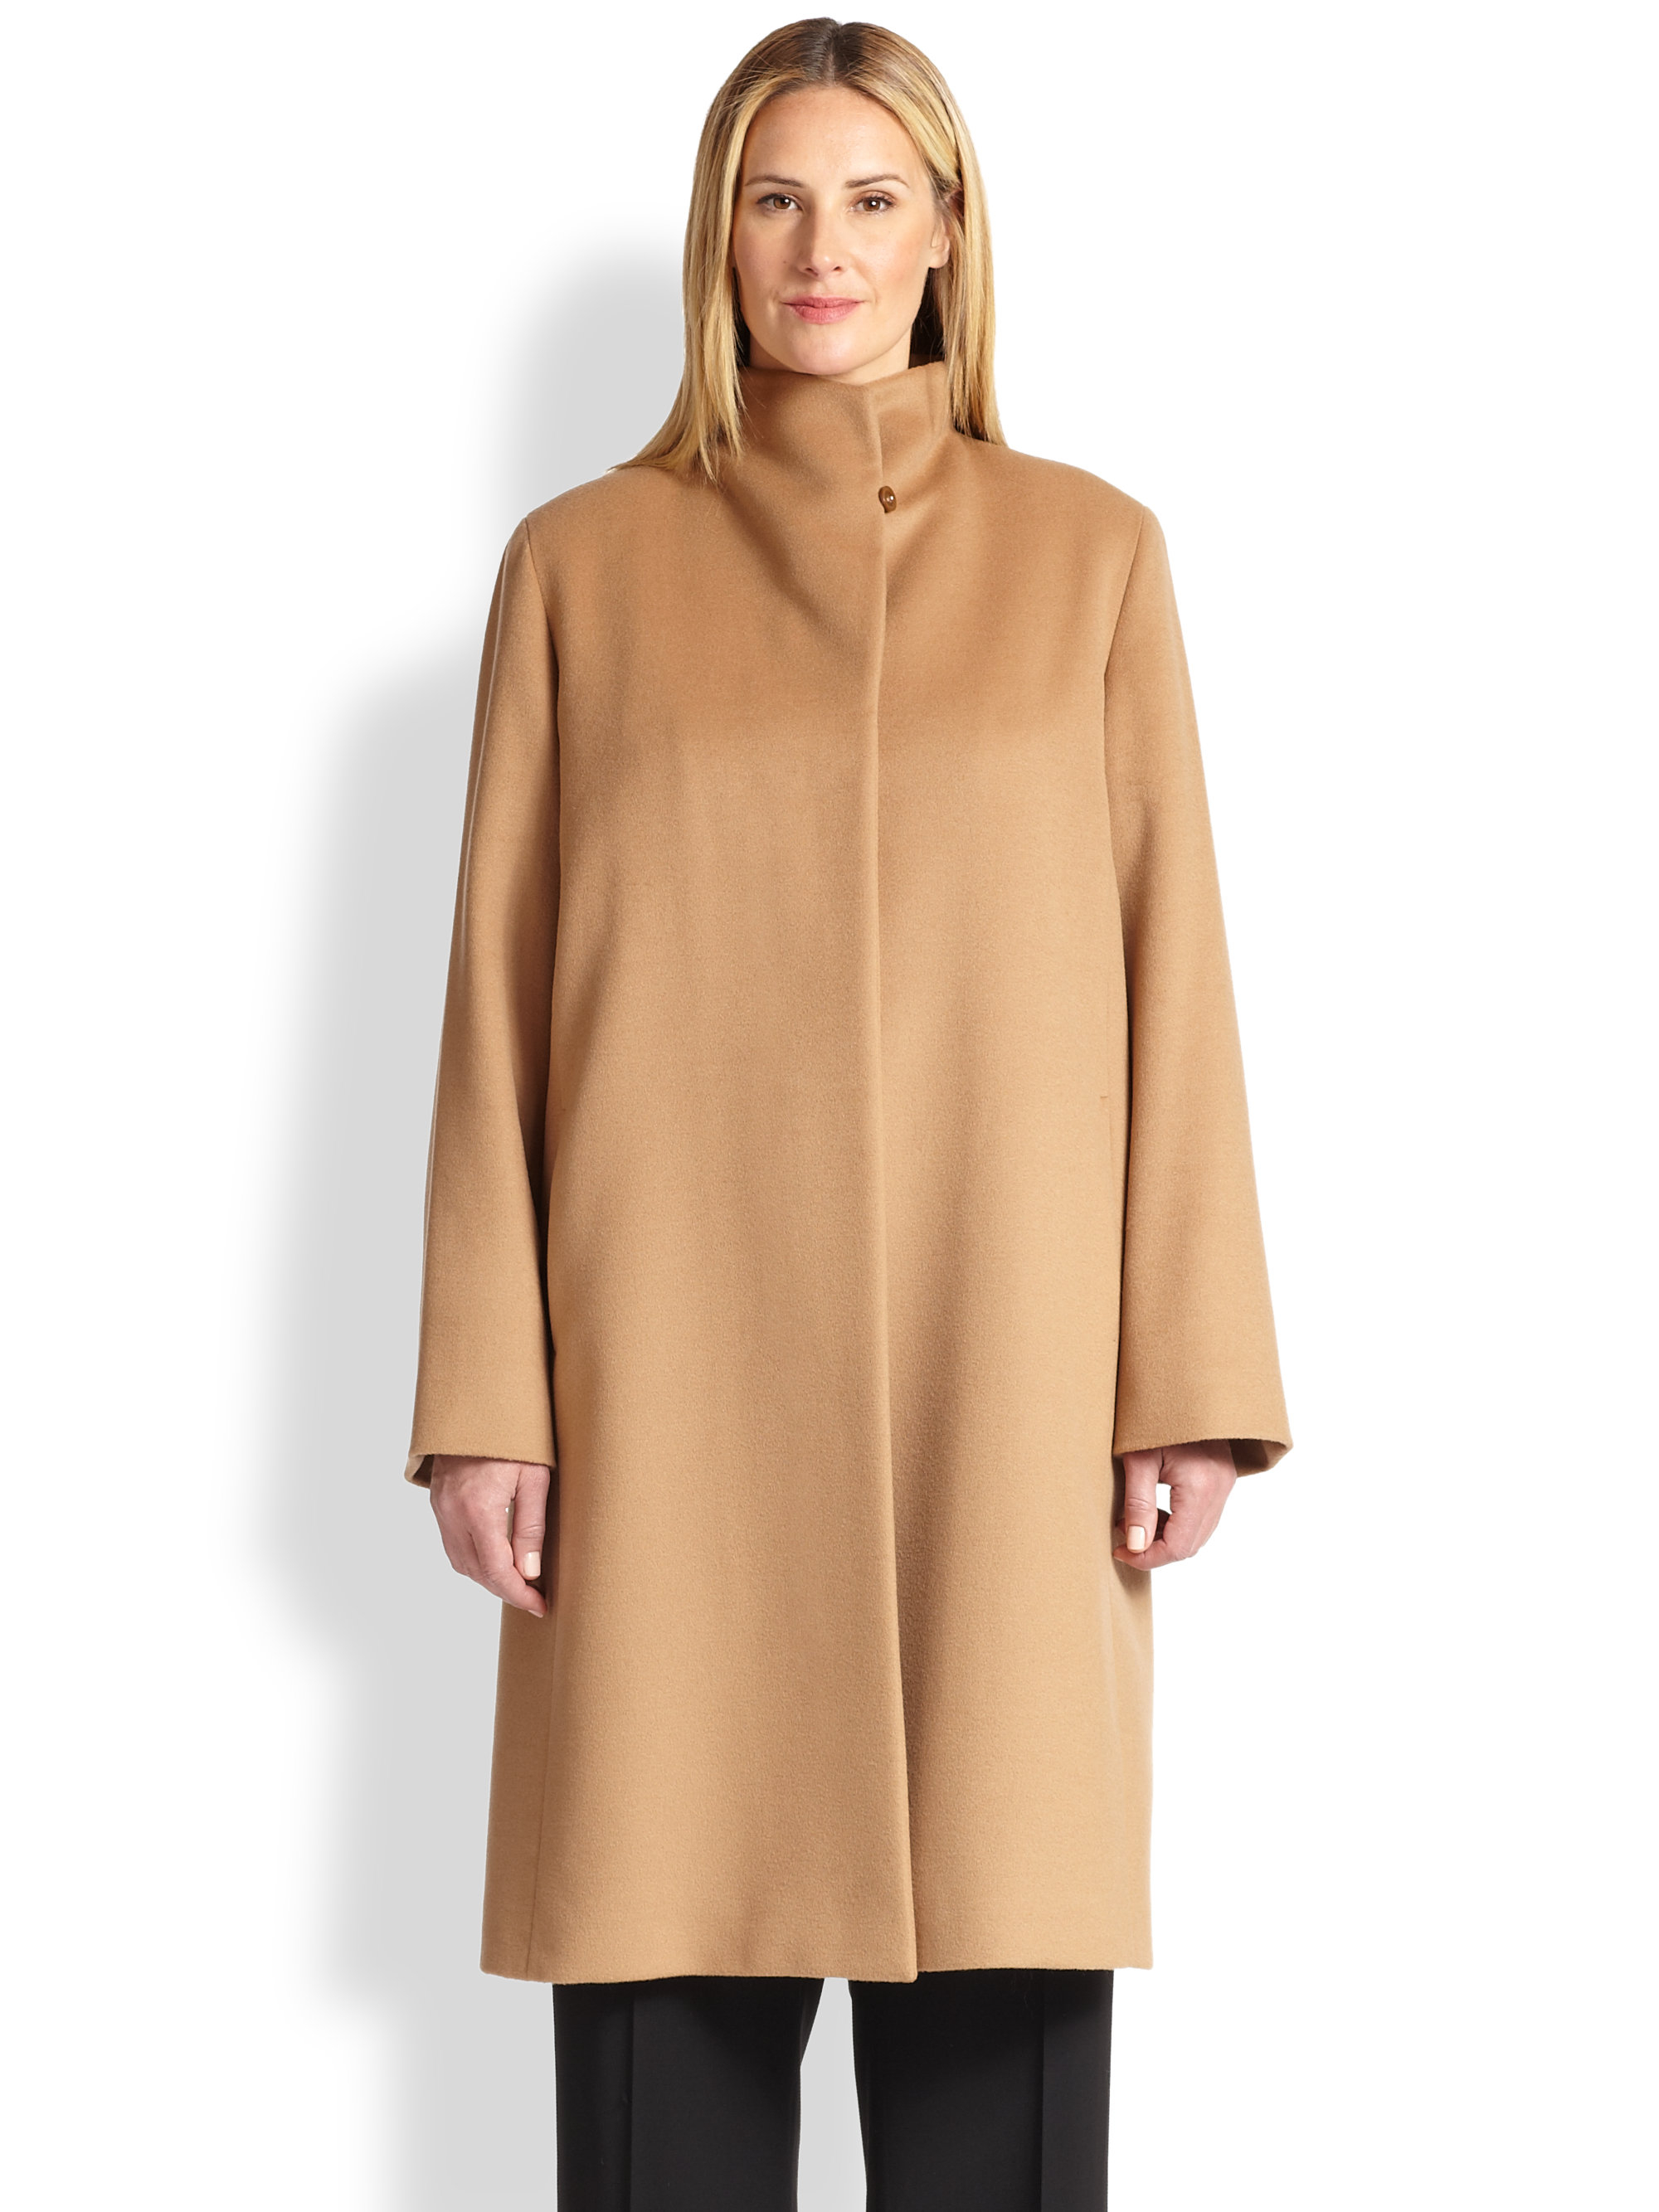 Cinzia rocca Wool Walking Coat in Natural | Lyst